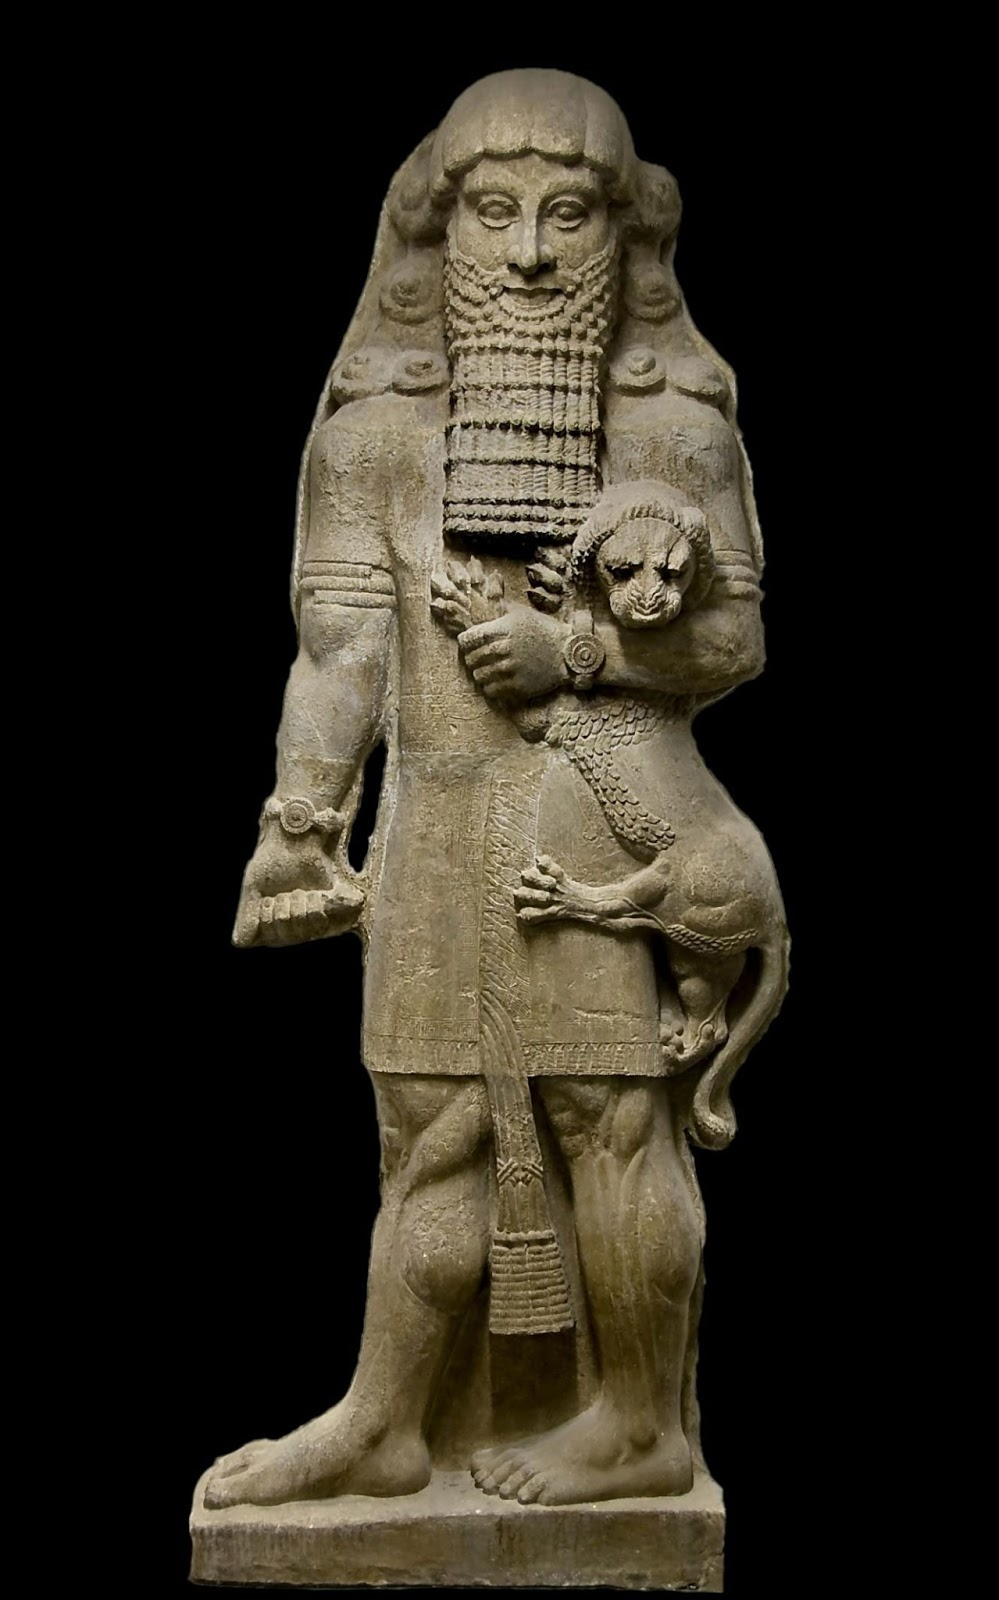 How did Gilgamesh show his arrogance in The Epic of Gilgamesh?